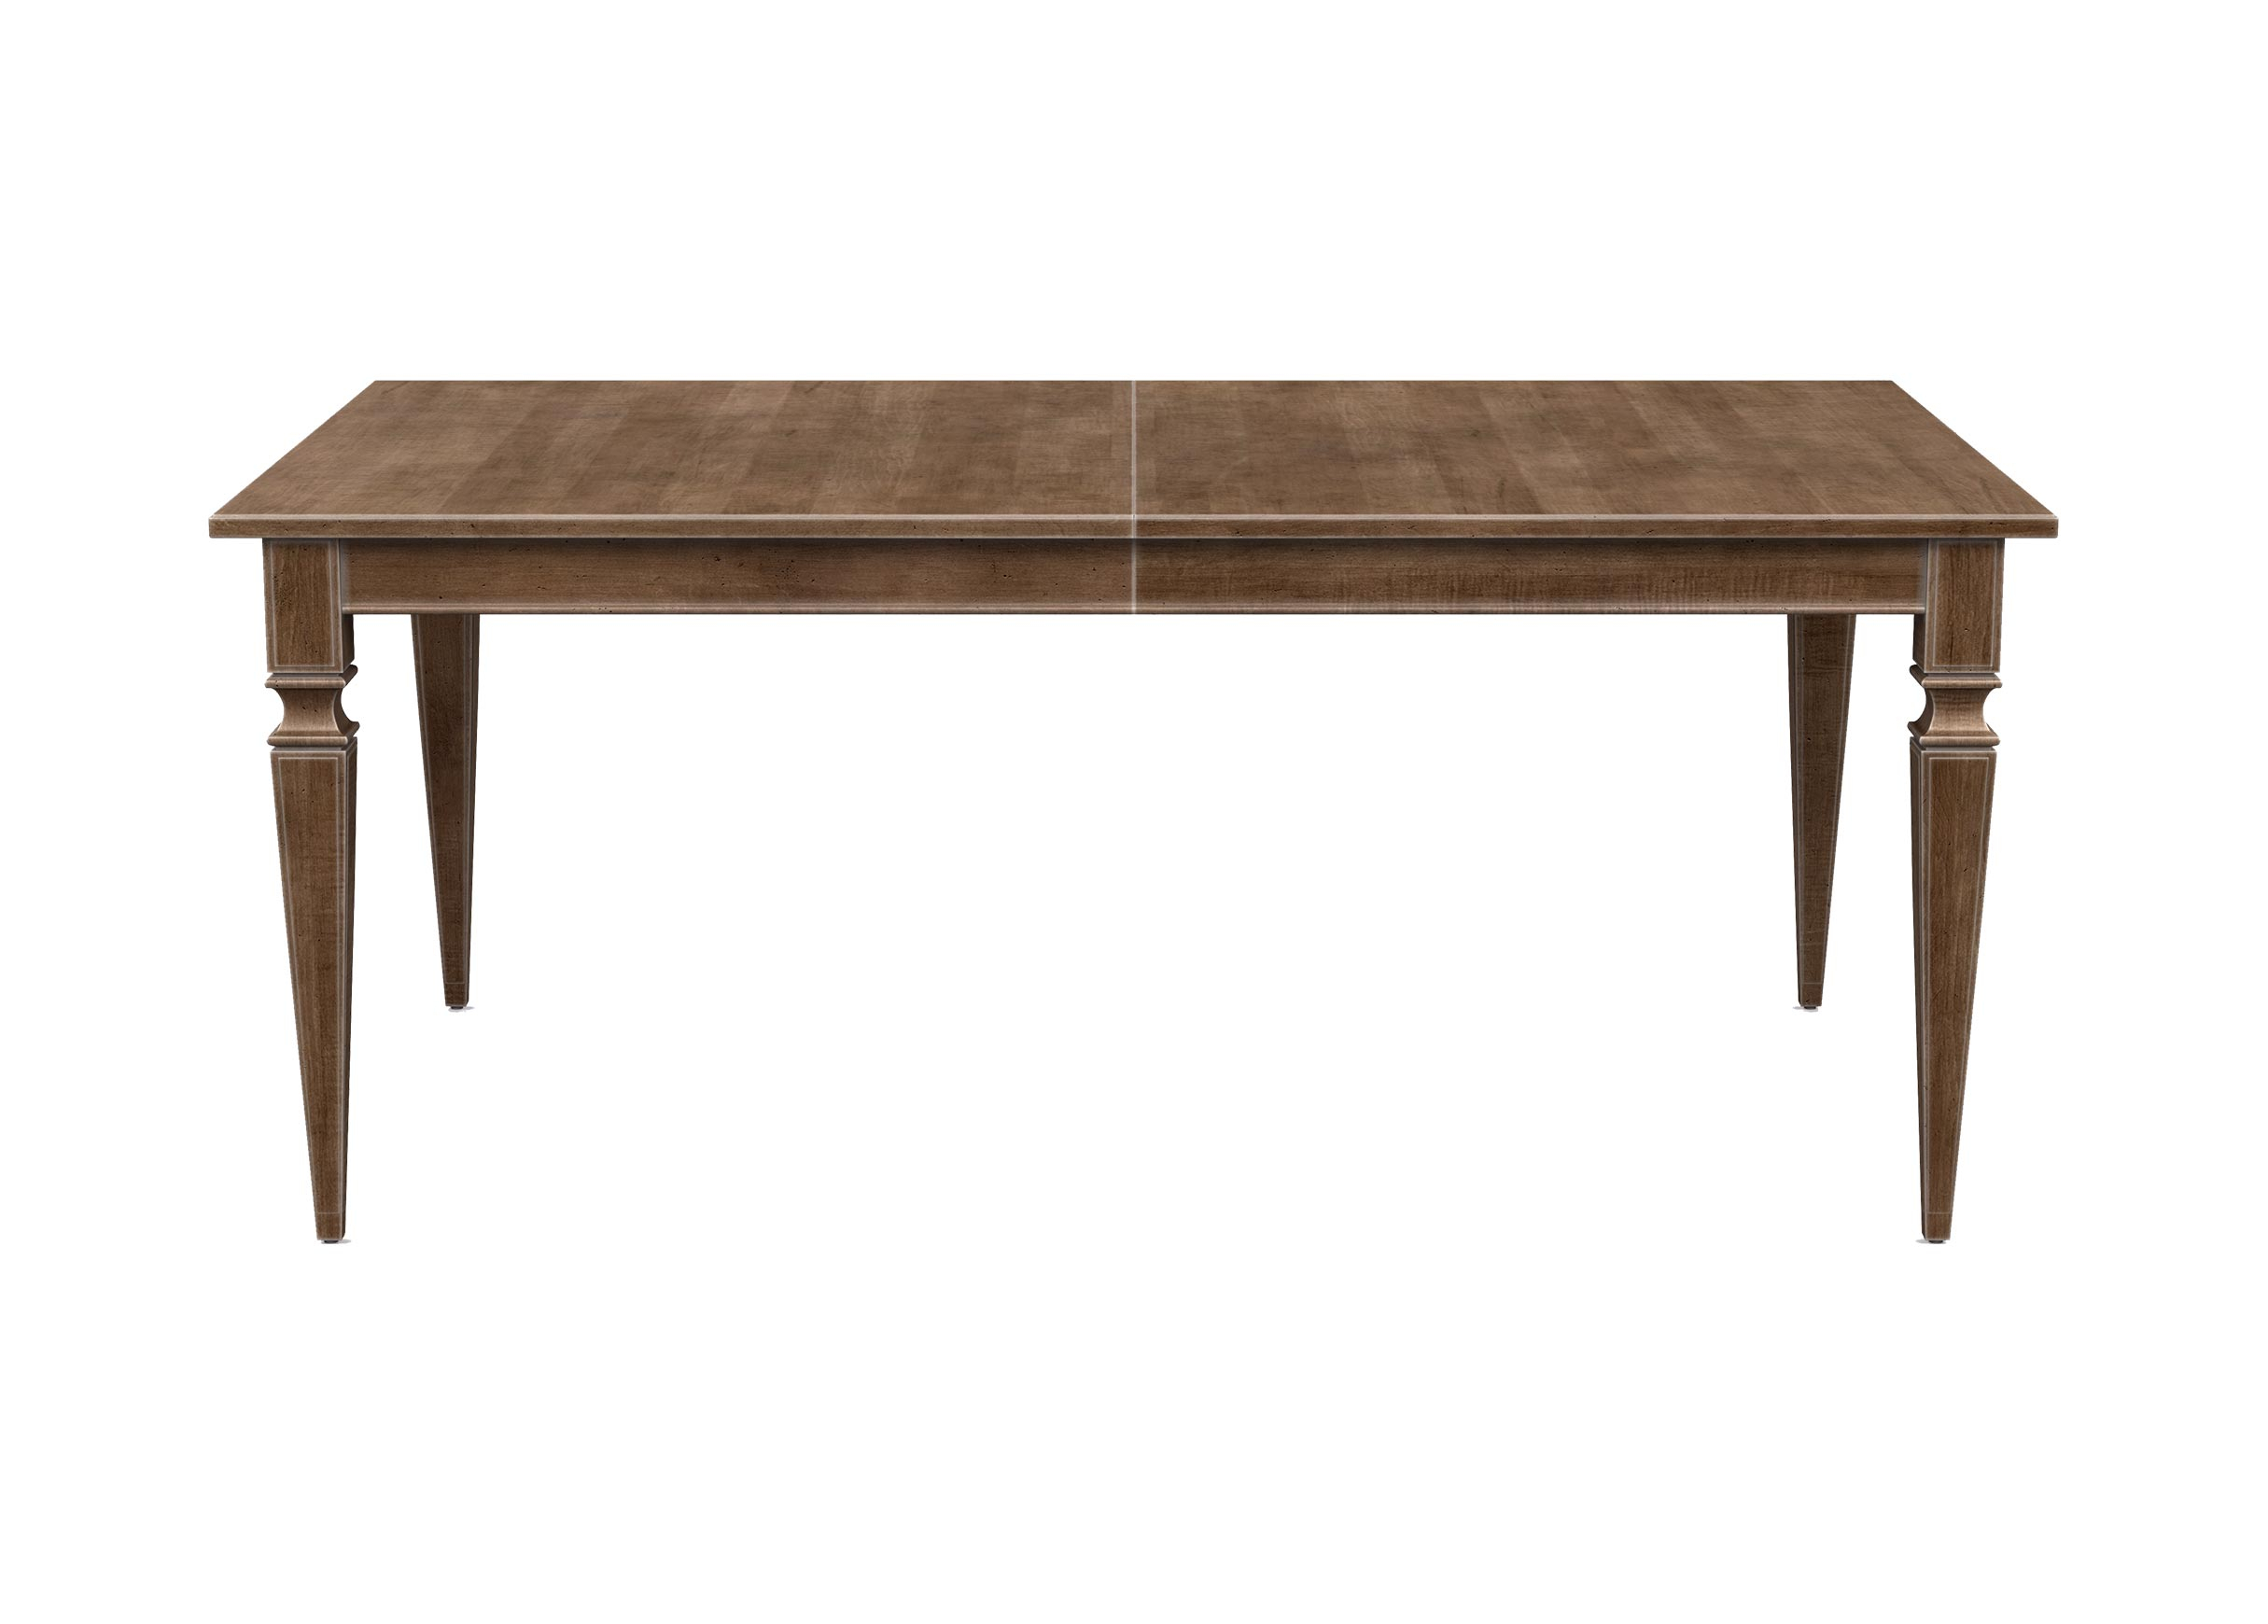 Avery Extension Dining Table | Dining Tables | Ethan Allen For 2018 Avery Round Dining Tables (View 9 of 25)